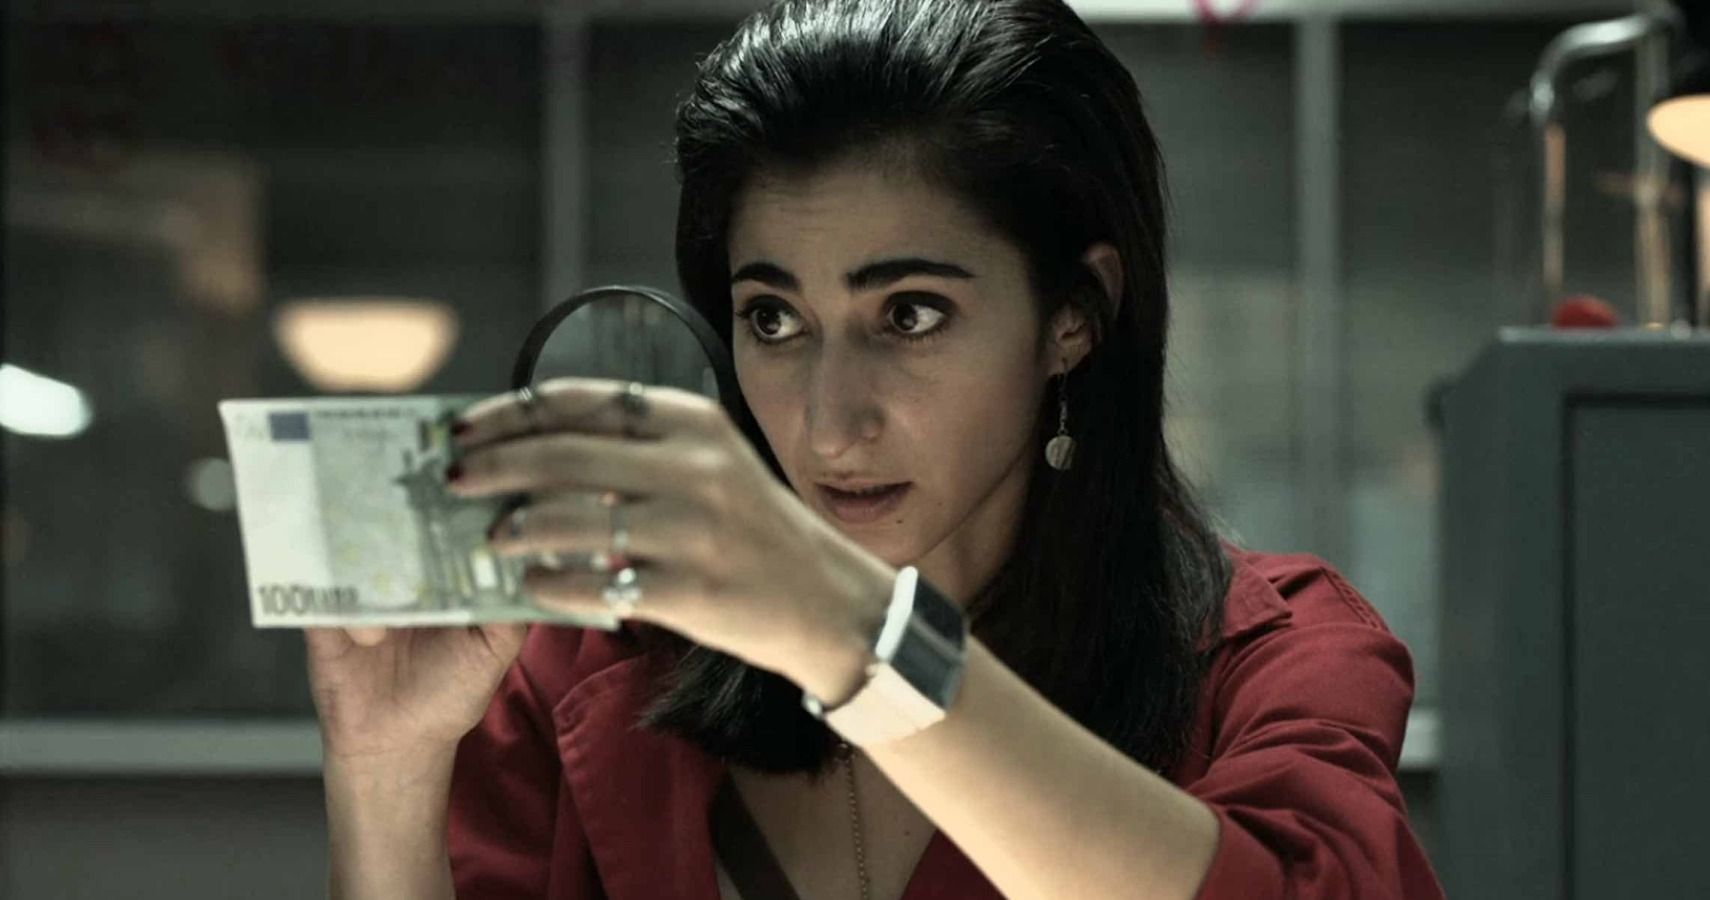 Money Heist: 10 Interesting Facts About Alba Flores (Nairobi)